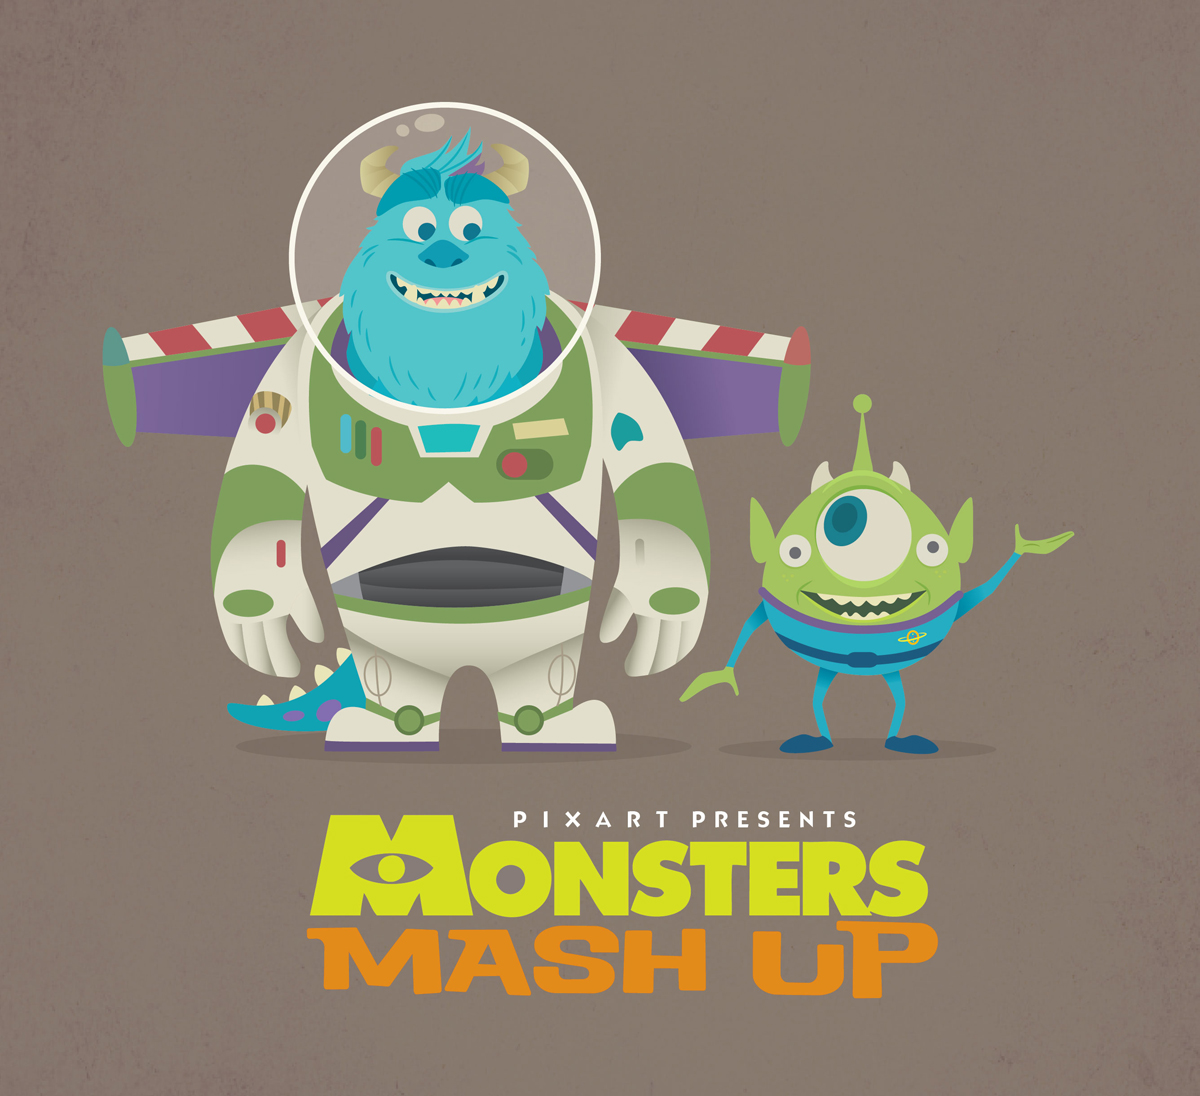 PixArt Call To Artists: Monsters Mash-Up